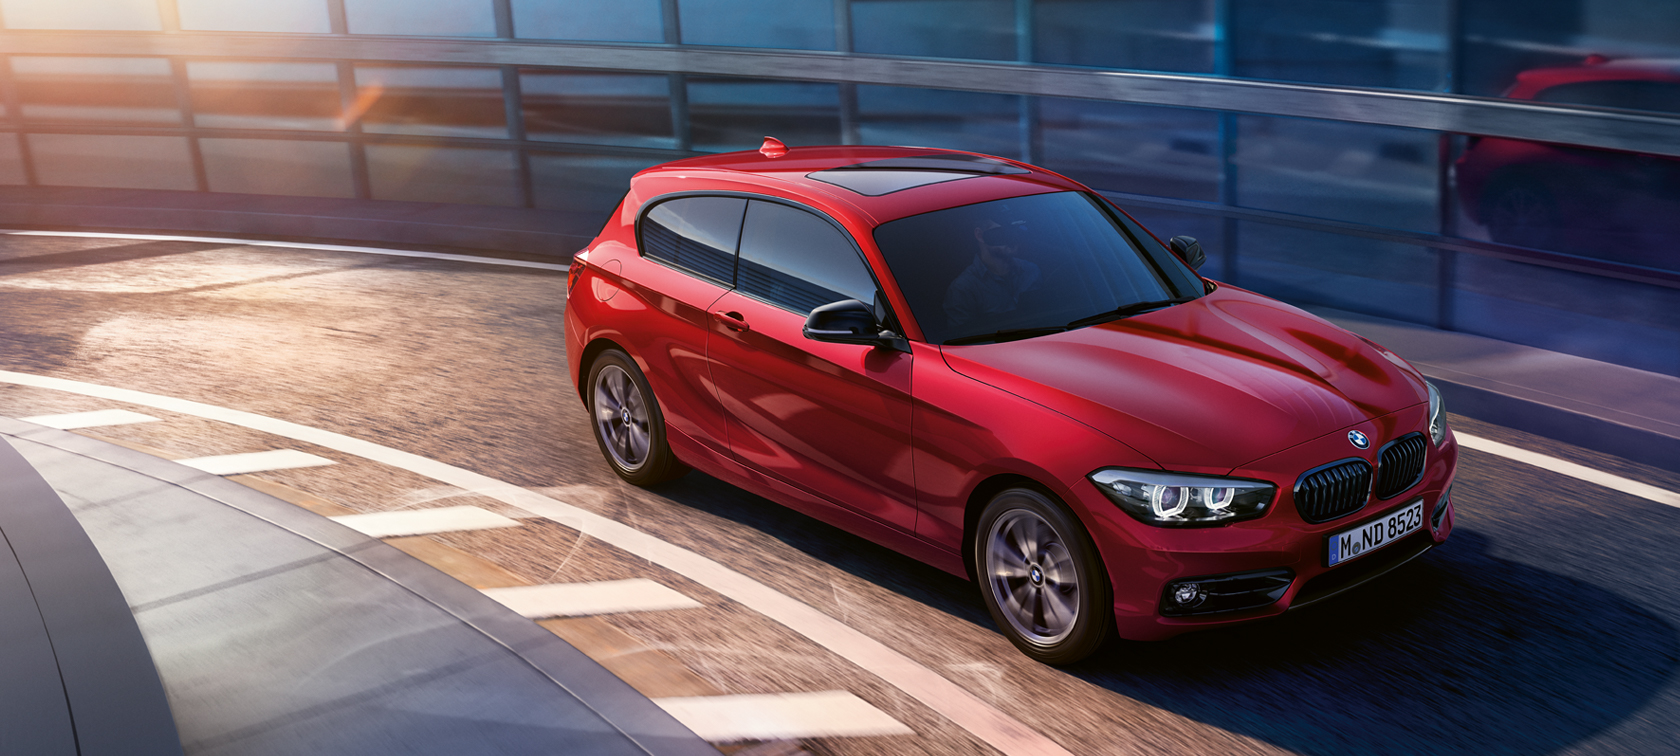 1 series new cars with full equipment that delivers high performance